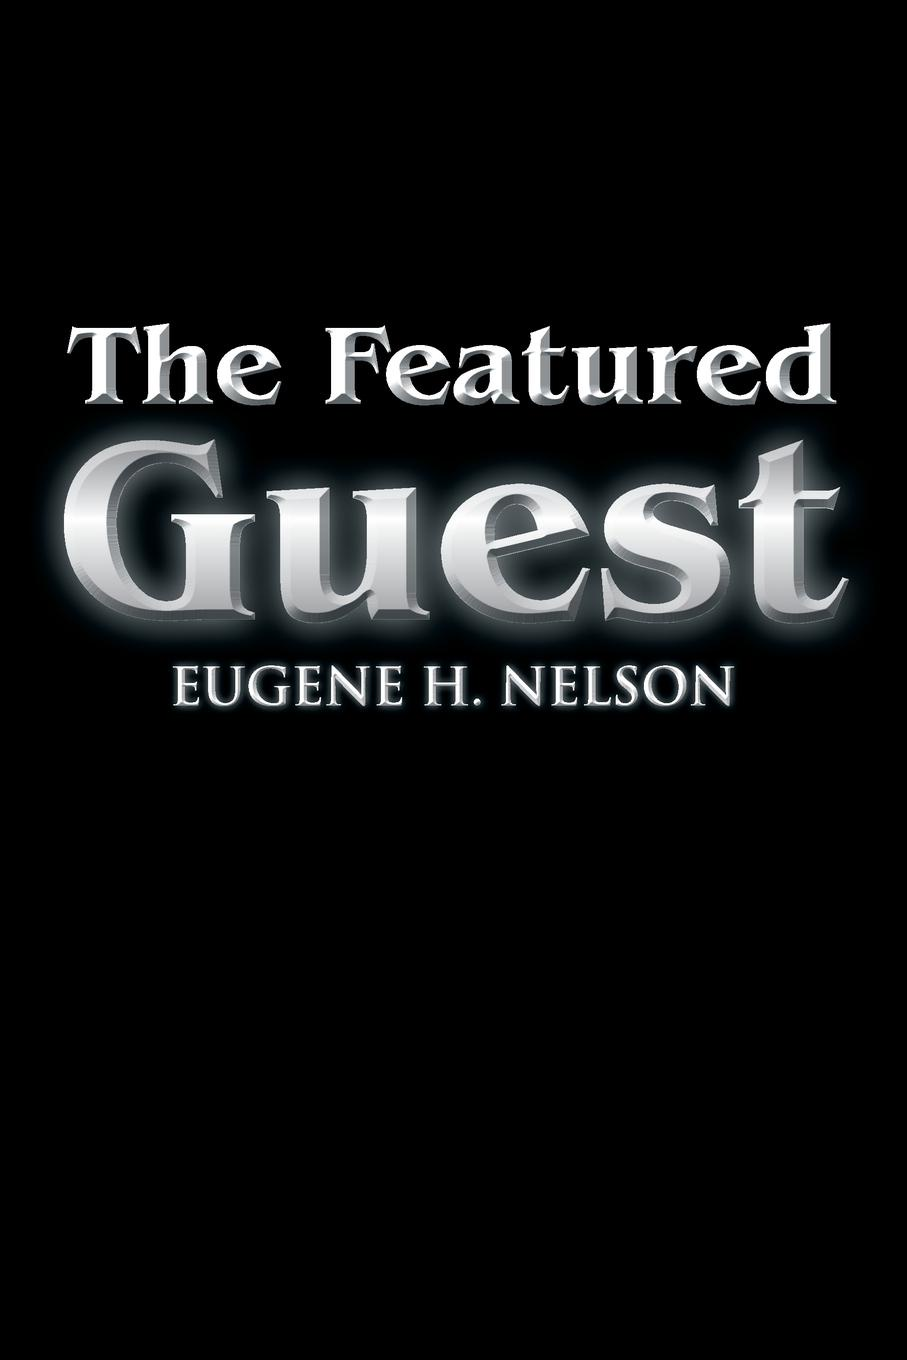 Eugene H. Nelson The Featured Guest guest